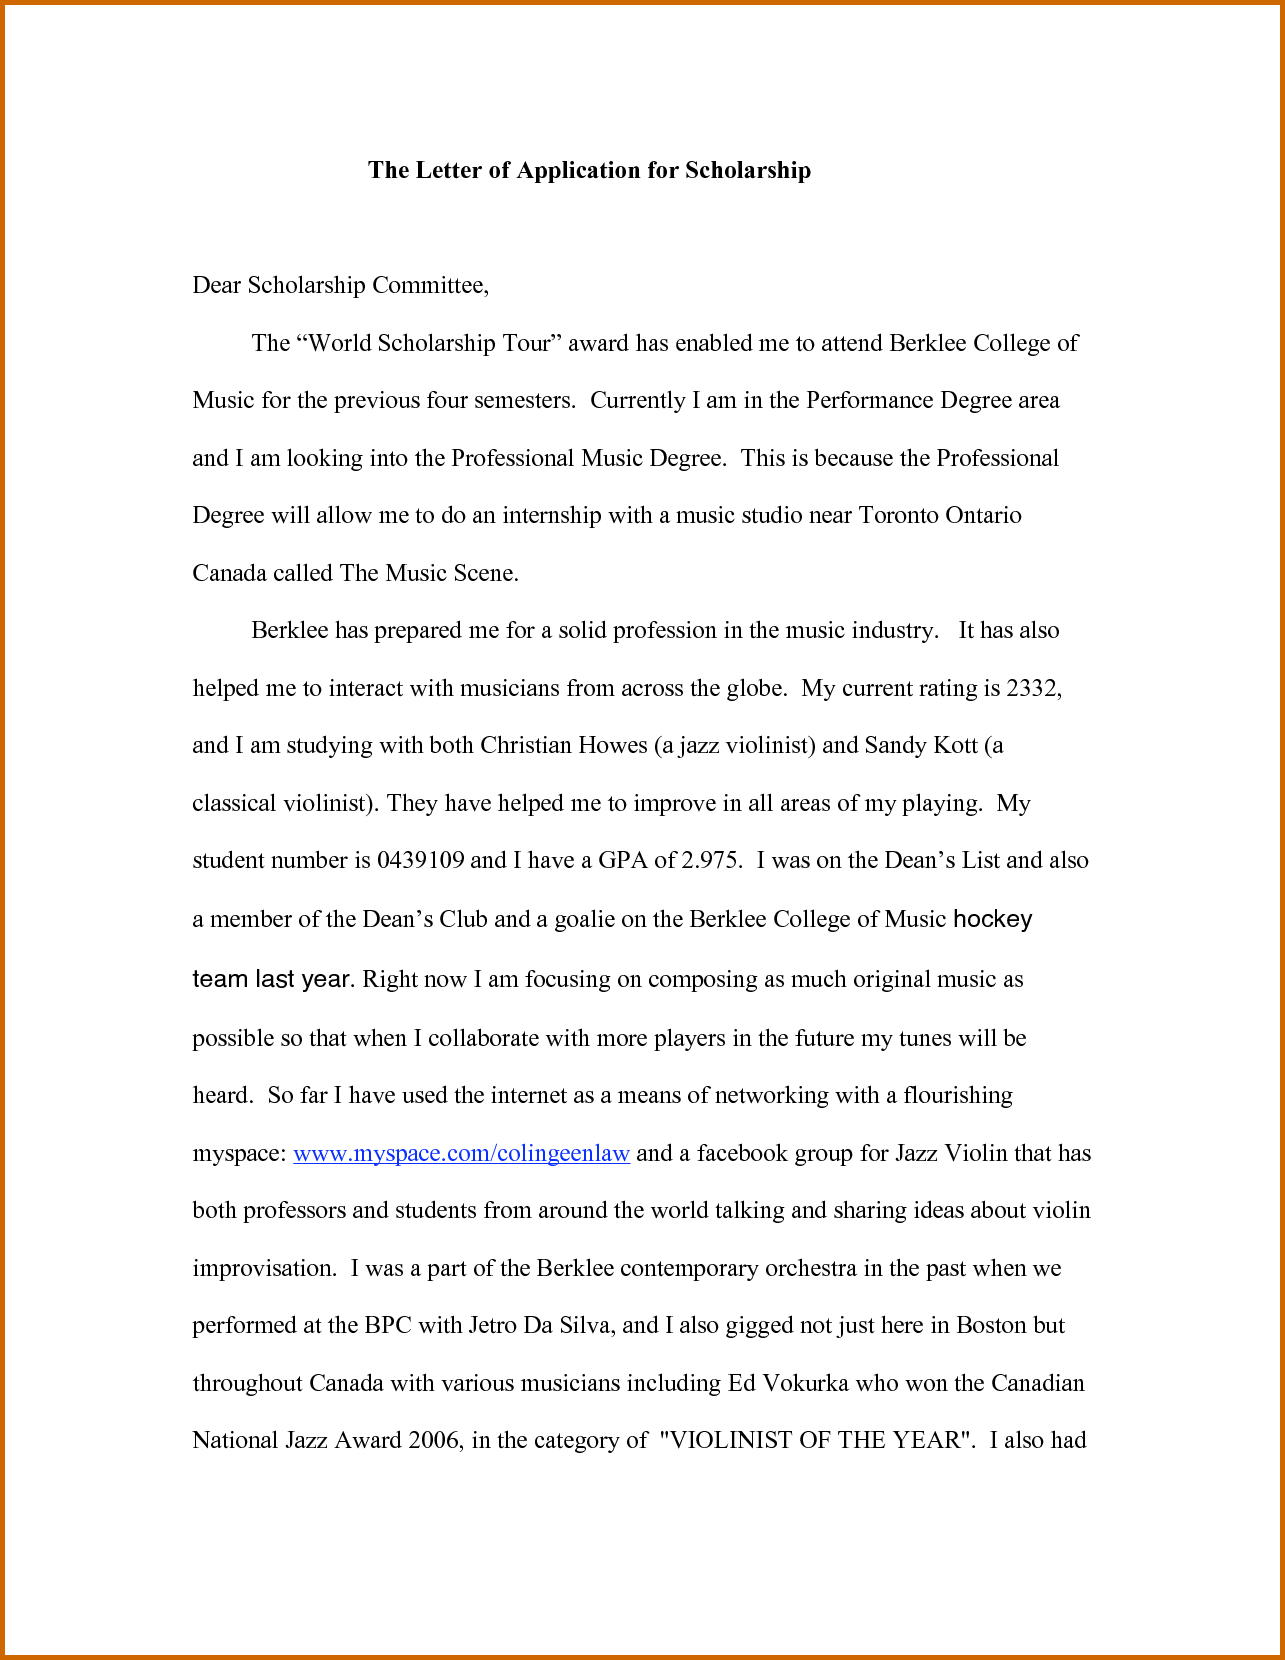 004 How To Write Application For Scholarship Essays Essay Best Winning A Book Pdf Tips On Full